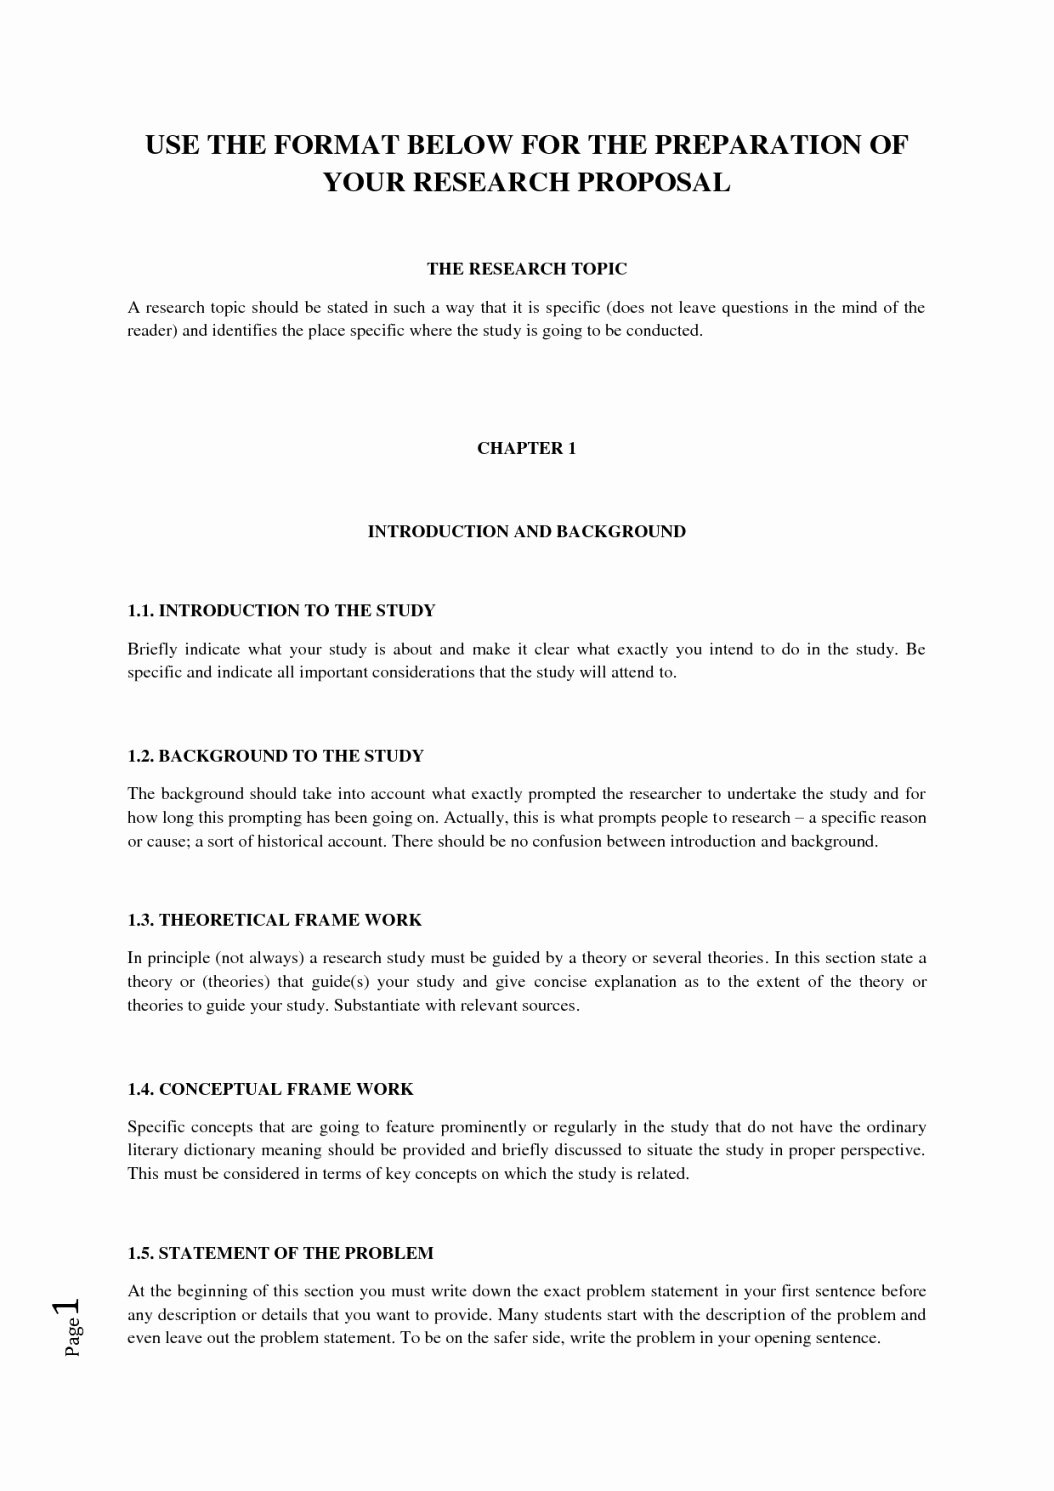 Research Proposal Outline Template Elegant Research Proposal Template Apa format Template A